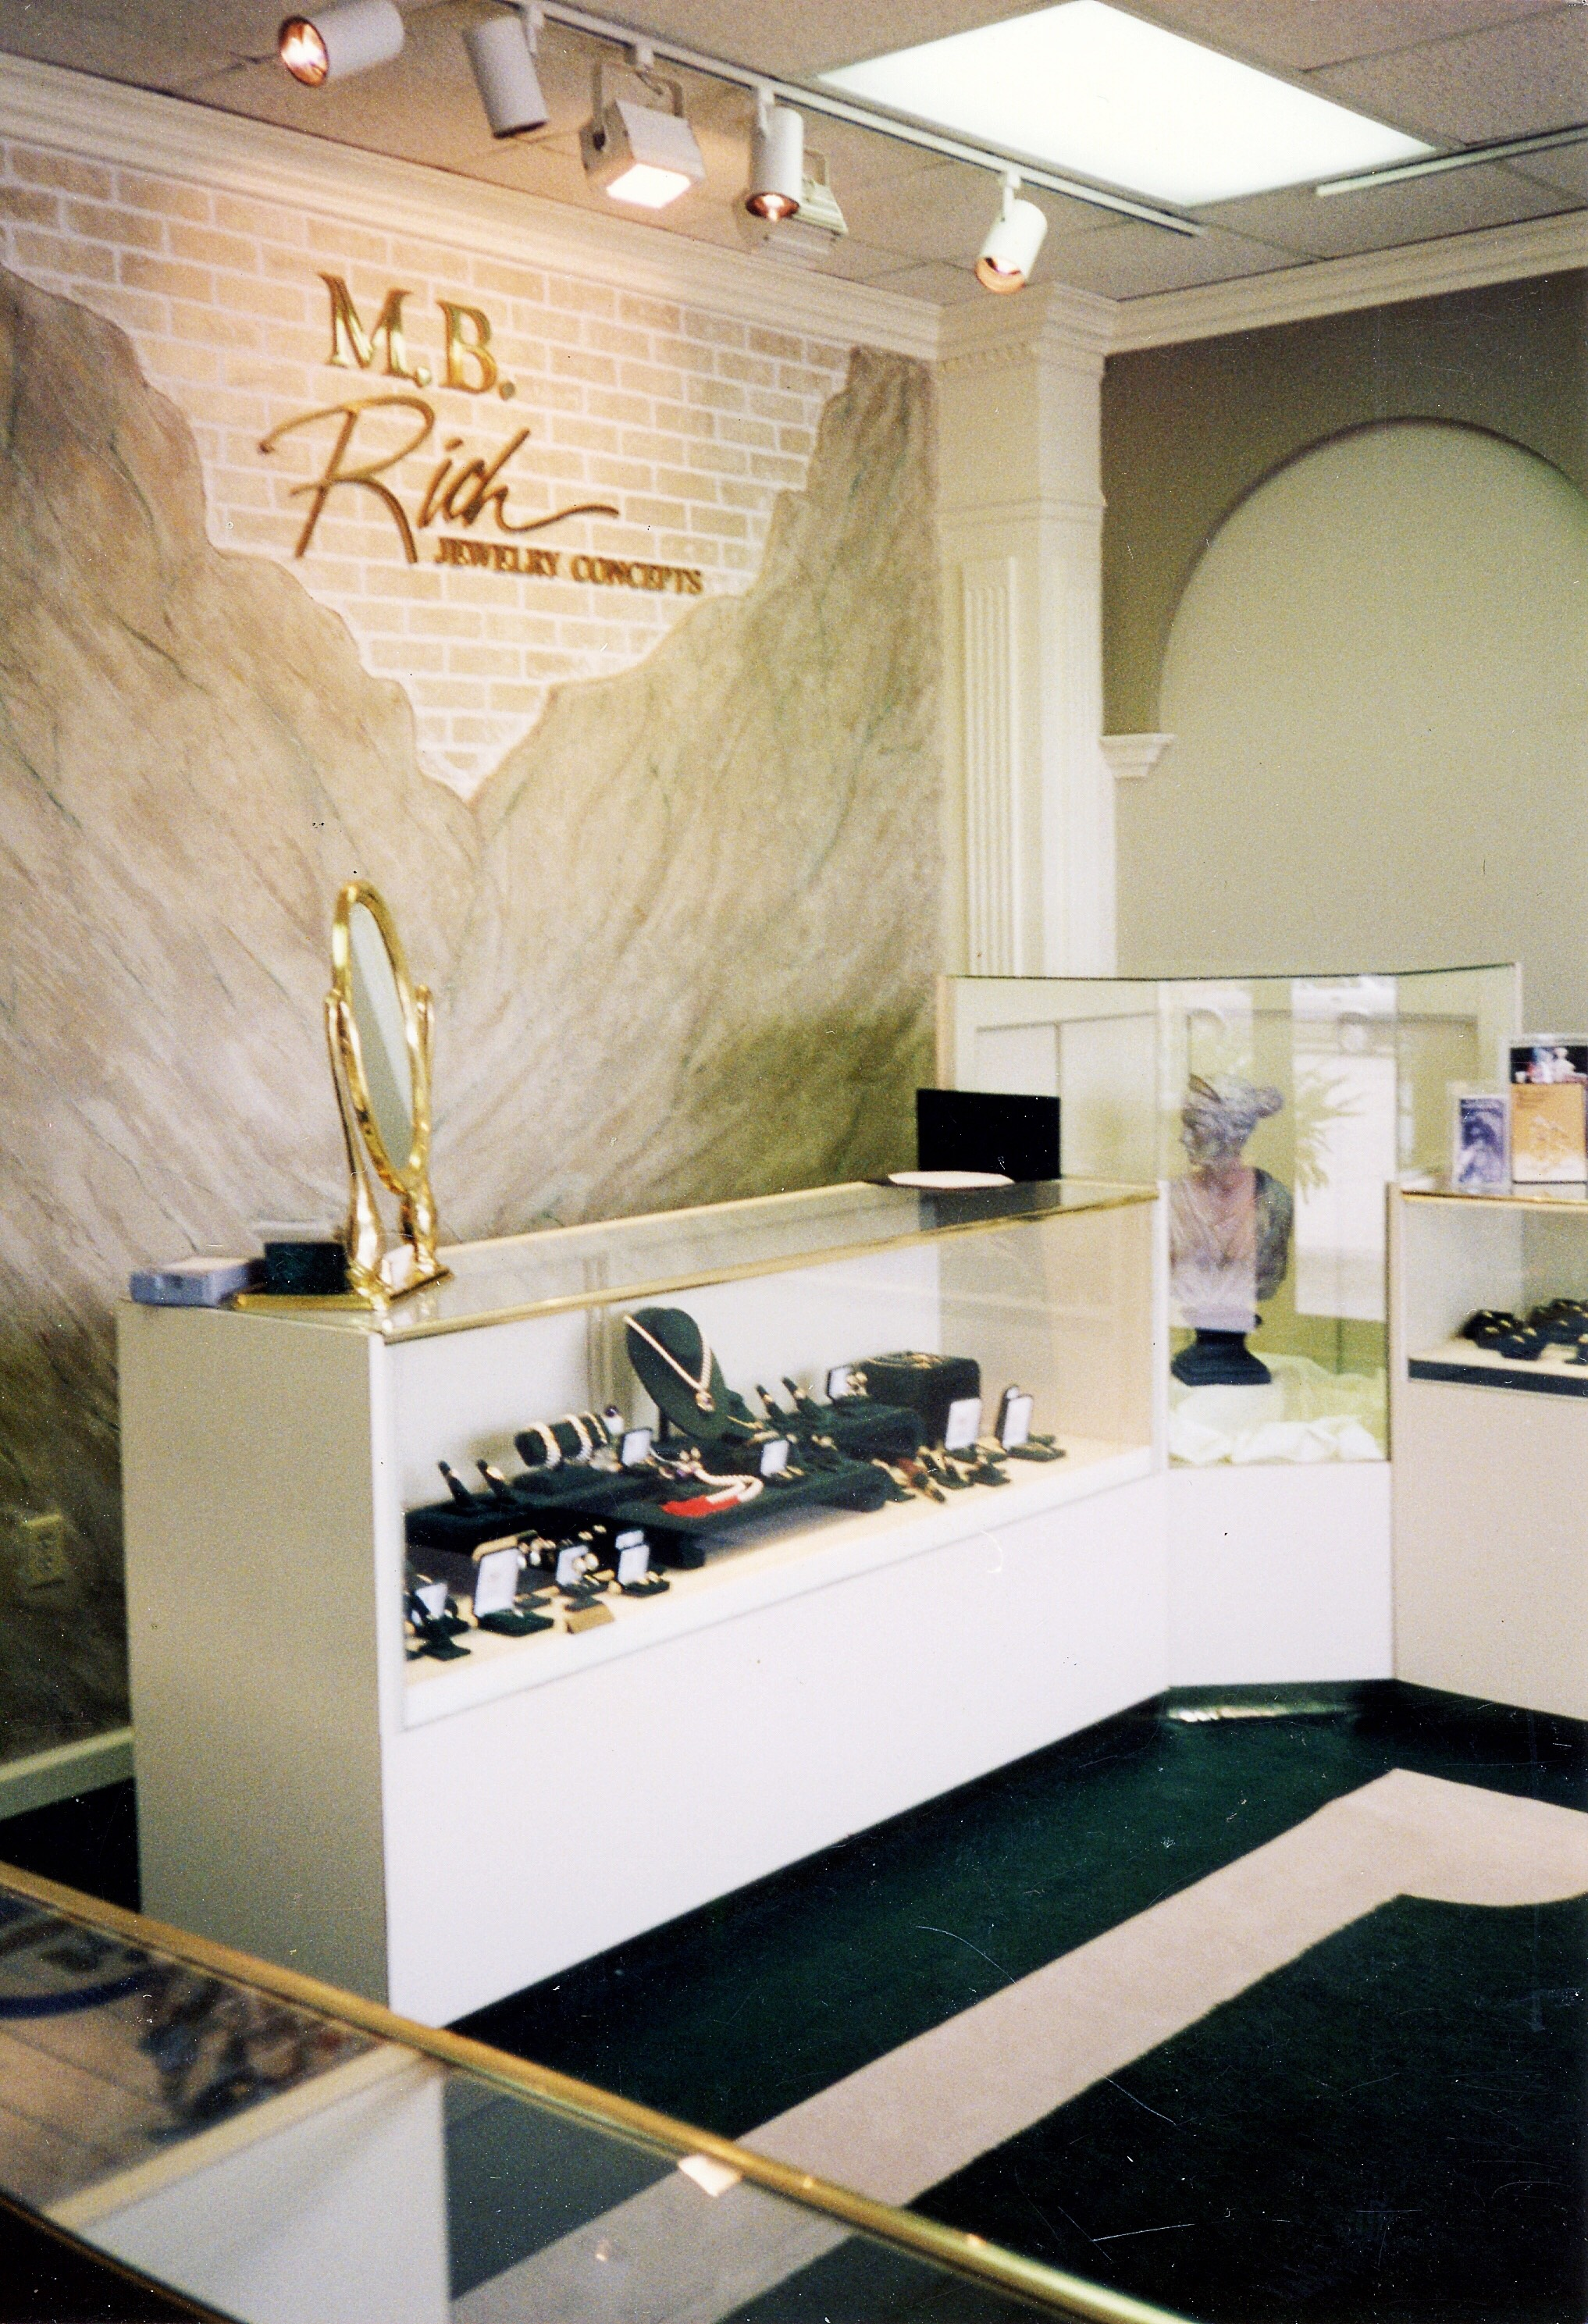 The first and original brick and mortar store for M. B. Rich Jewelry Concepts. -